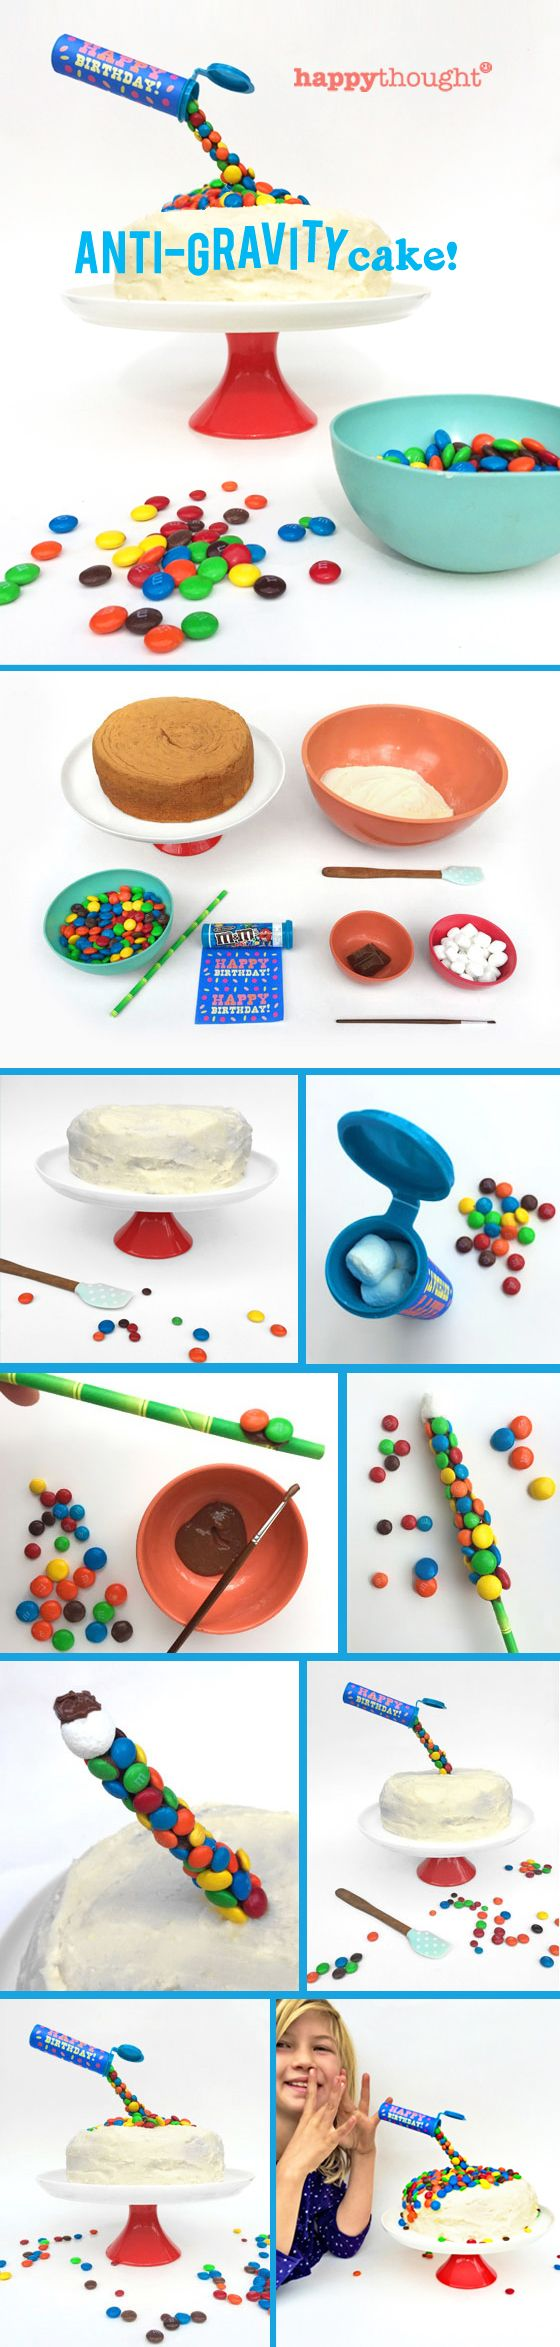 Cake Design Step By Step : Easy step-by-step birthday cake ideas for parties and ...